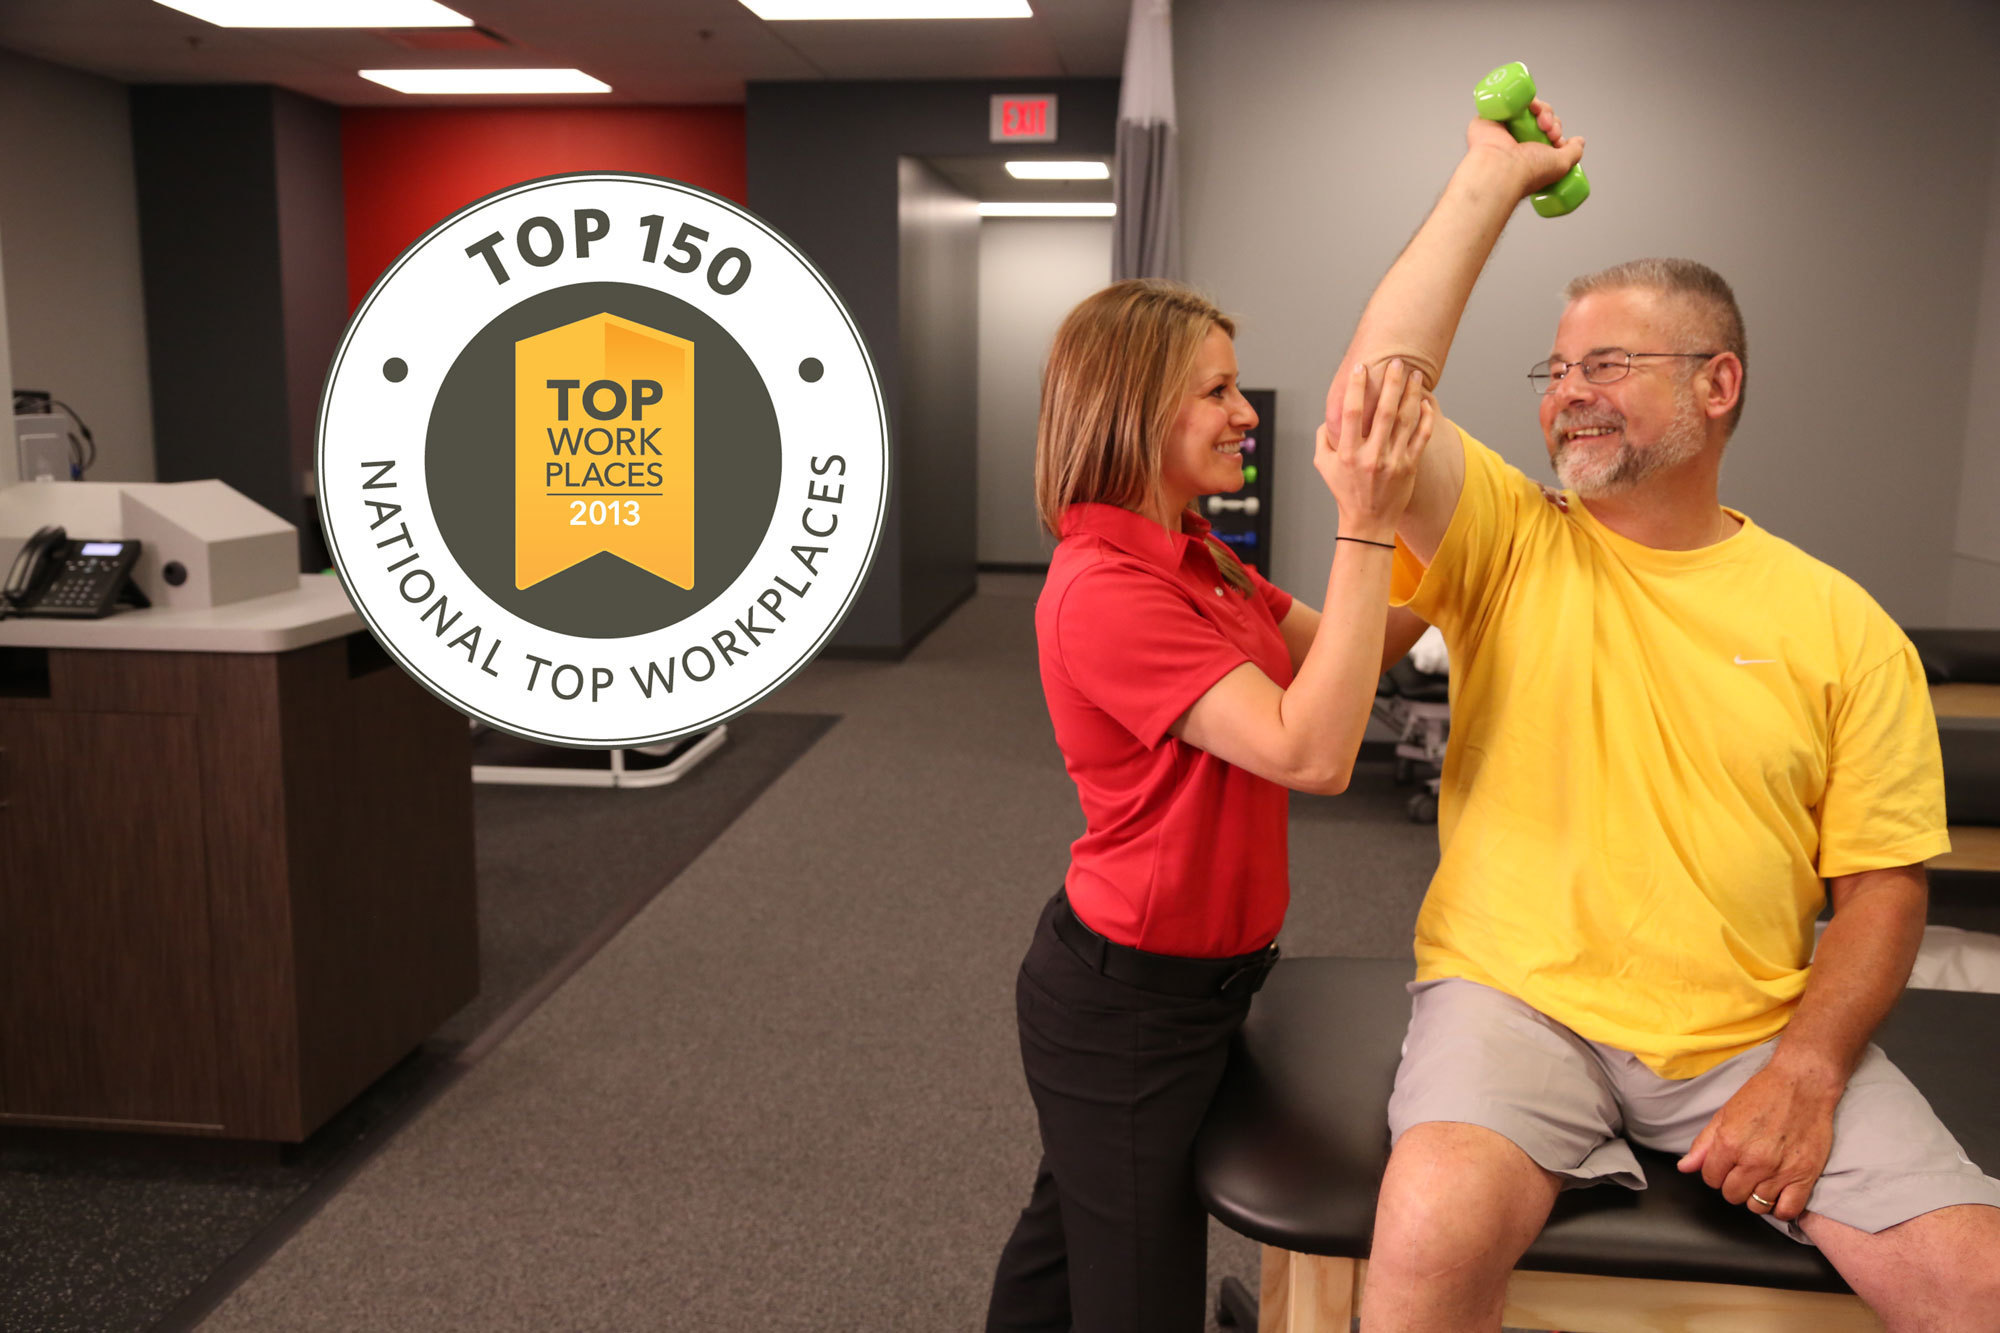 Article on physical therapy - Ati Physical Therapy Named Among Top 10 Healthcare Workplaces In The Nation Chicago Tribune